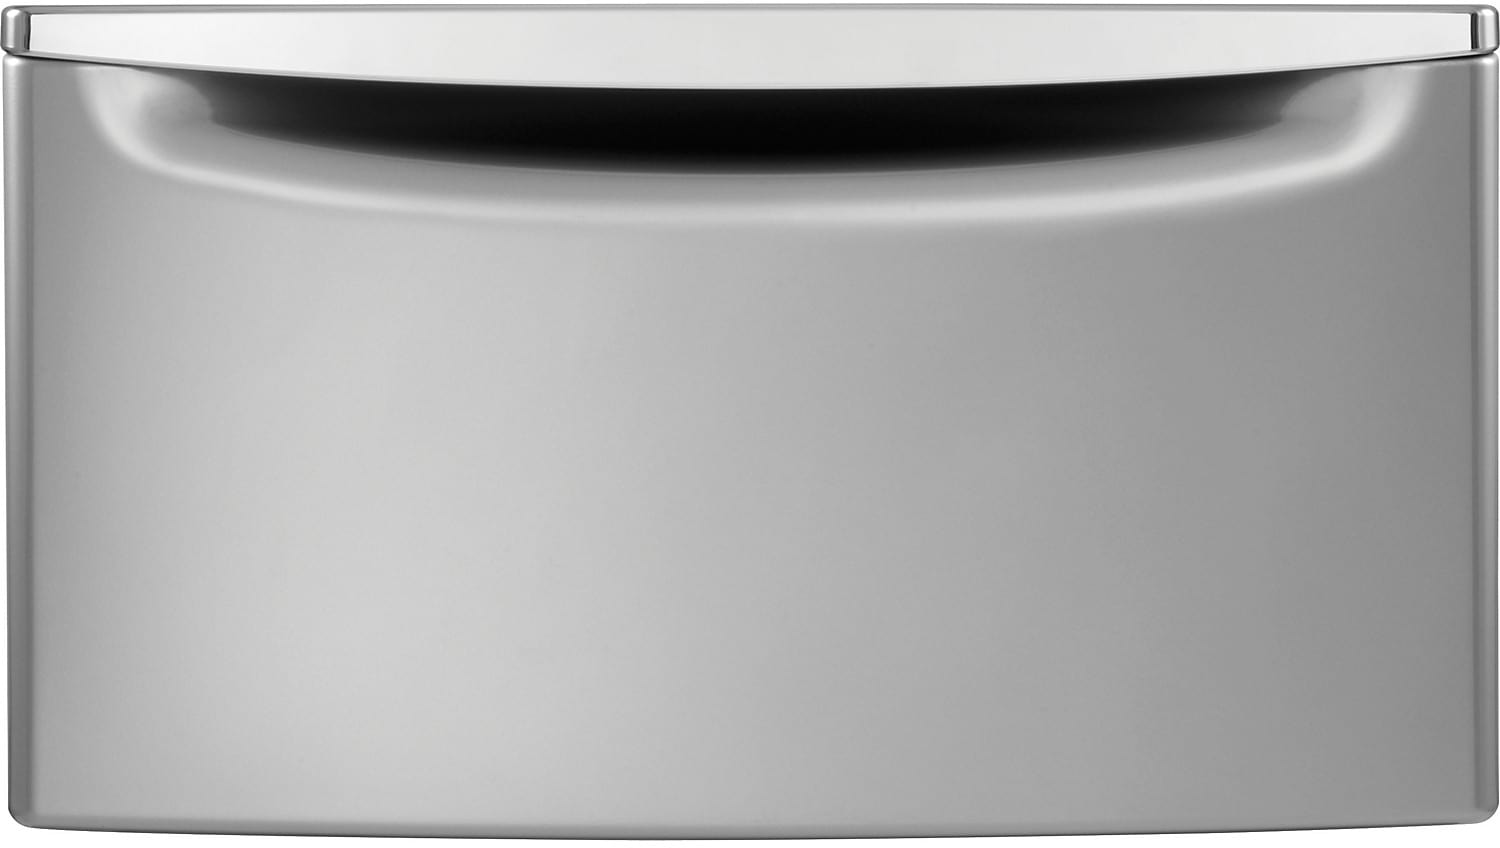 "Appliance Accessories - Whirlpool 15.5"" H Laundry Pedestal w/Storage Drawer - Chrome Shadow"